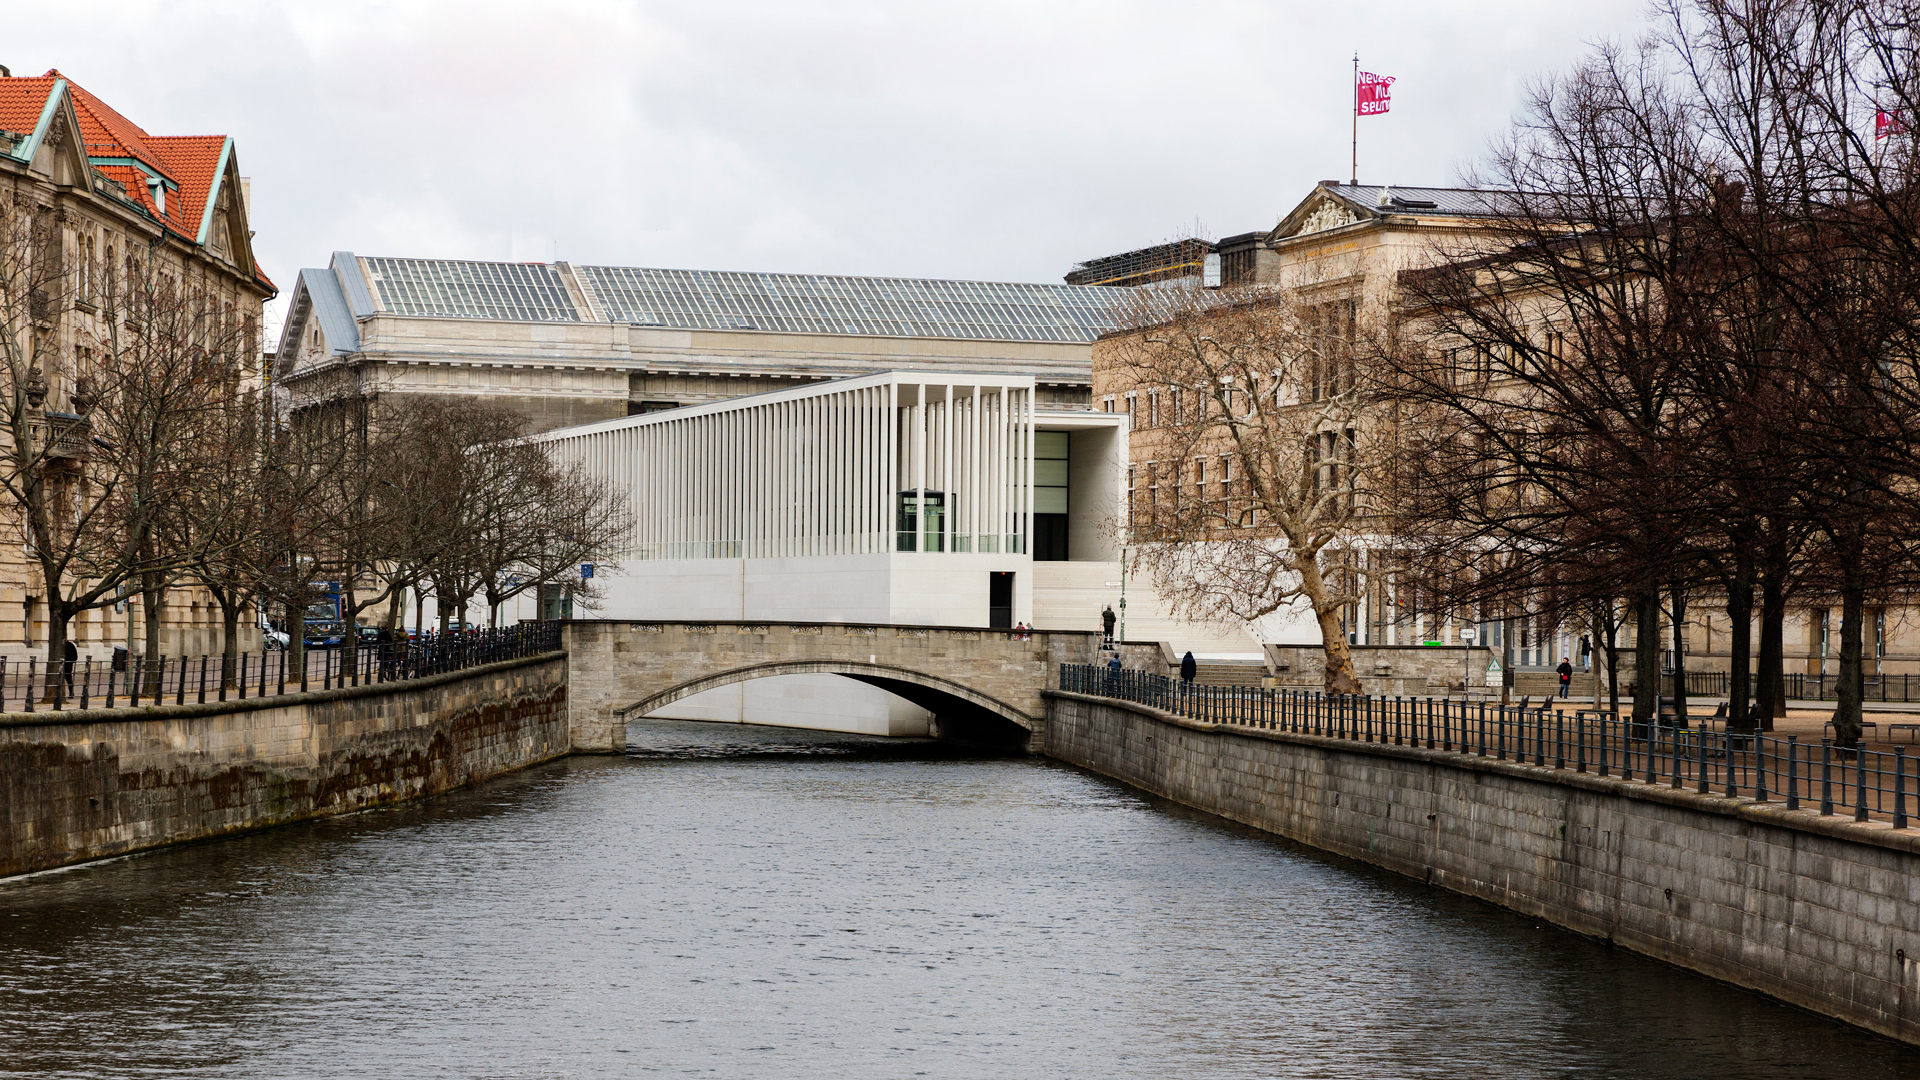 View from Schlossbru?cke| James Simon Galerie | David Chipperfield Architects| STIR